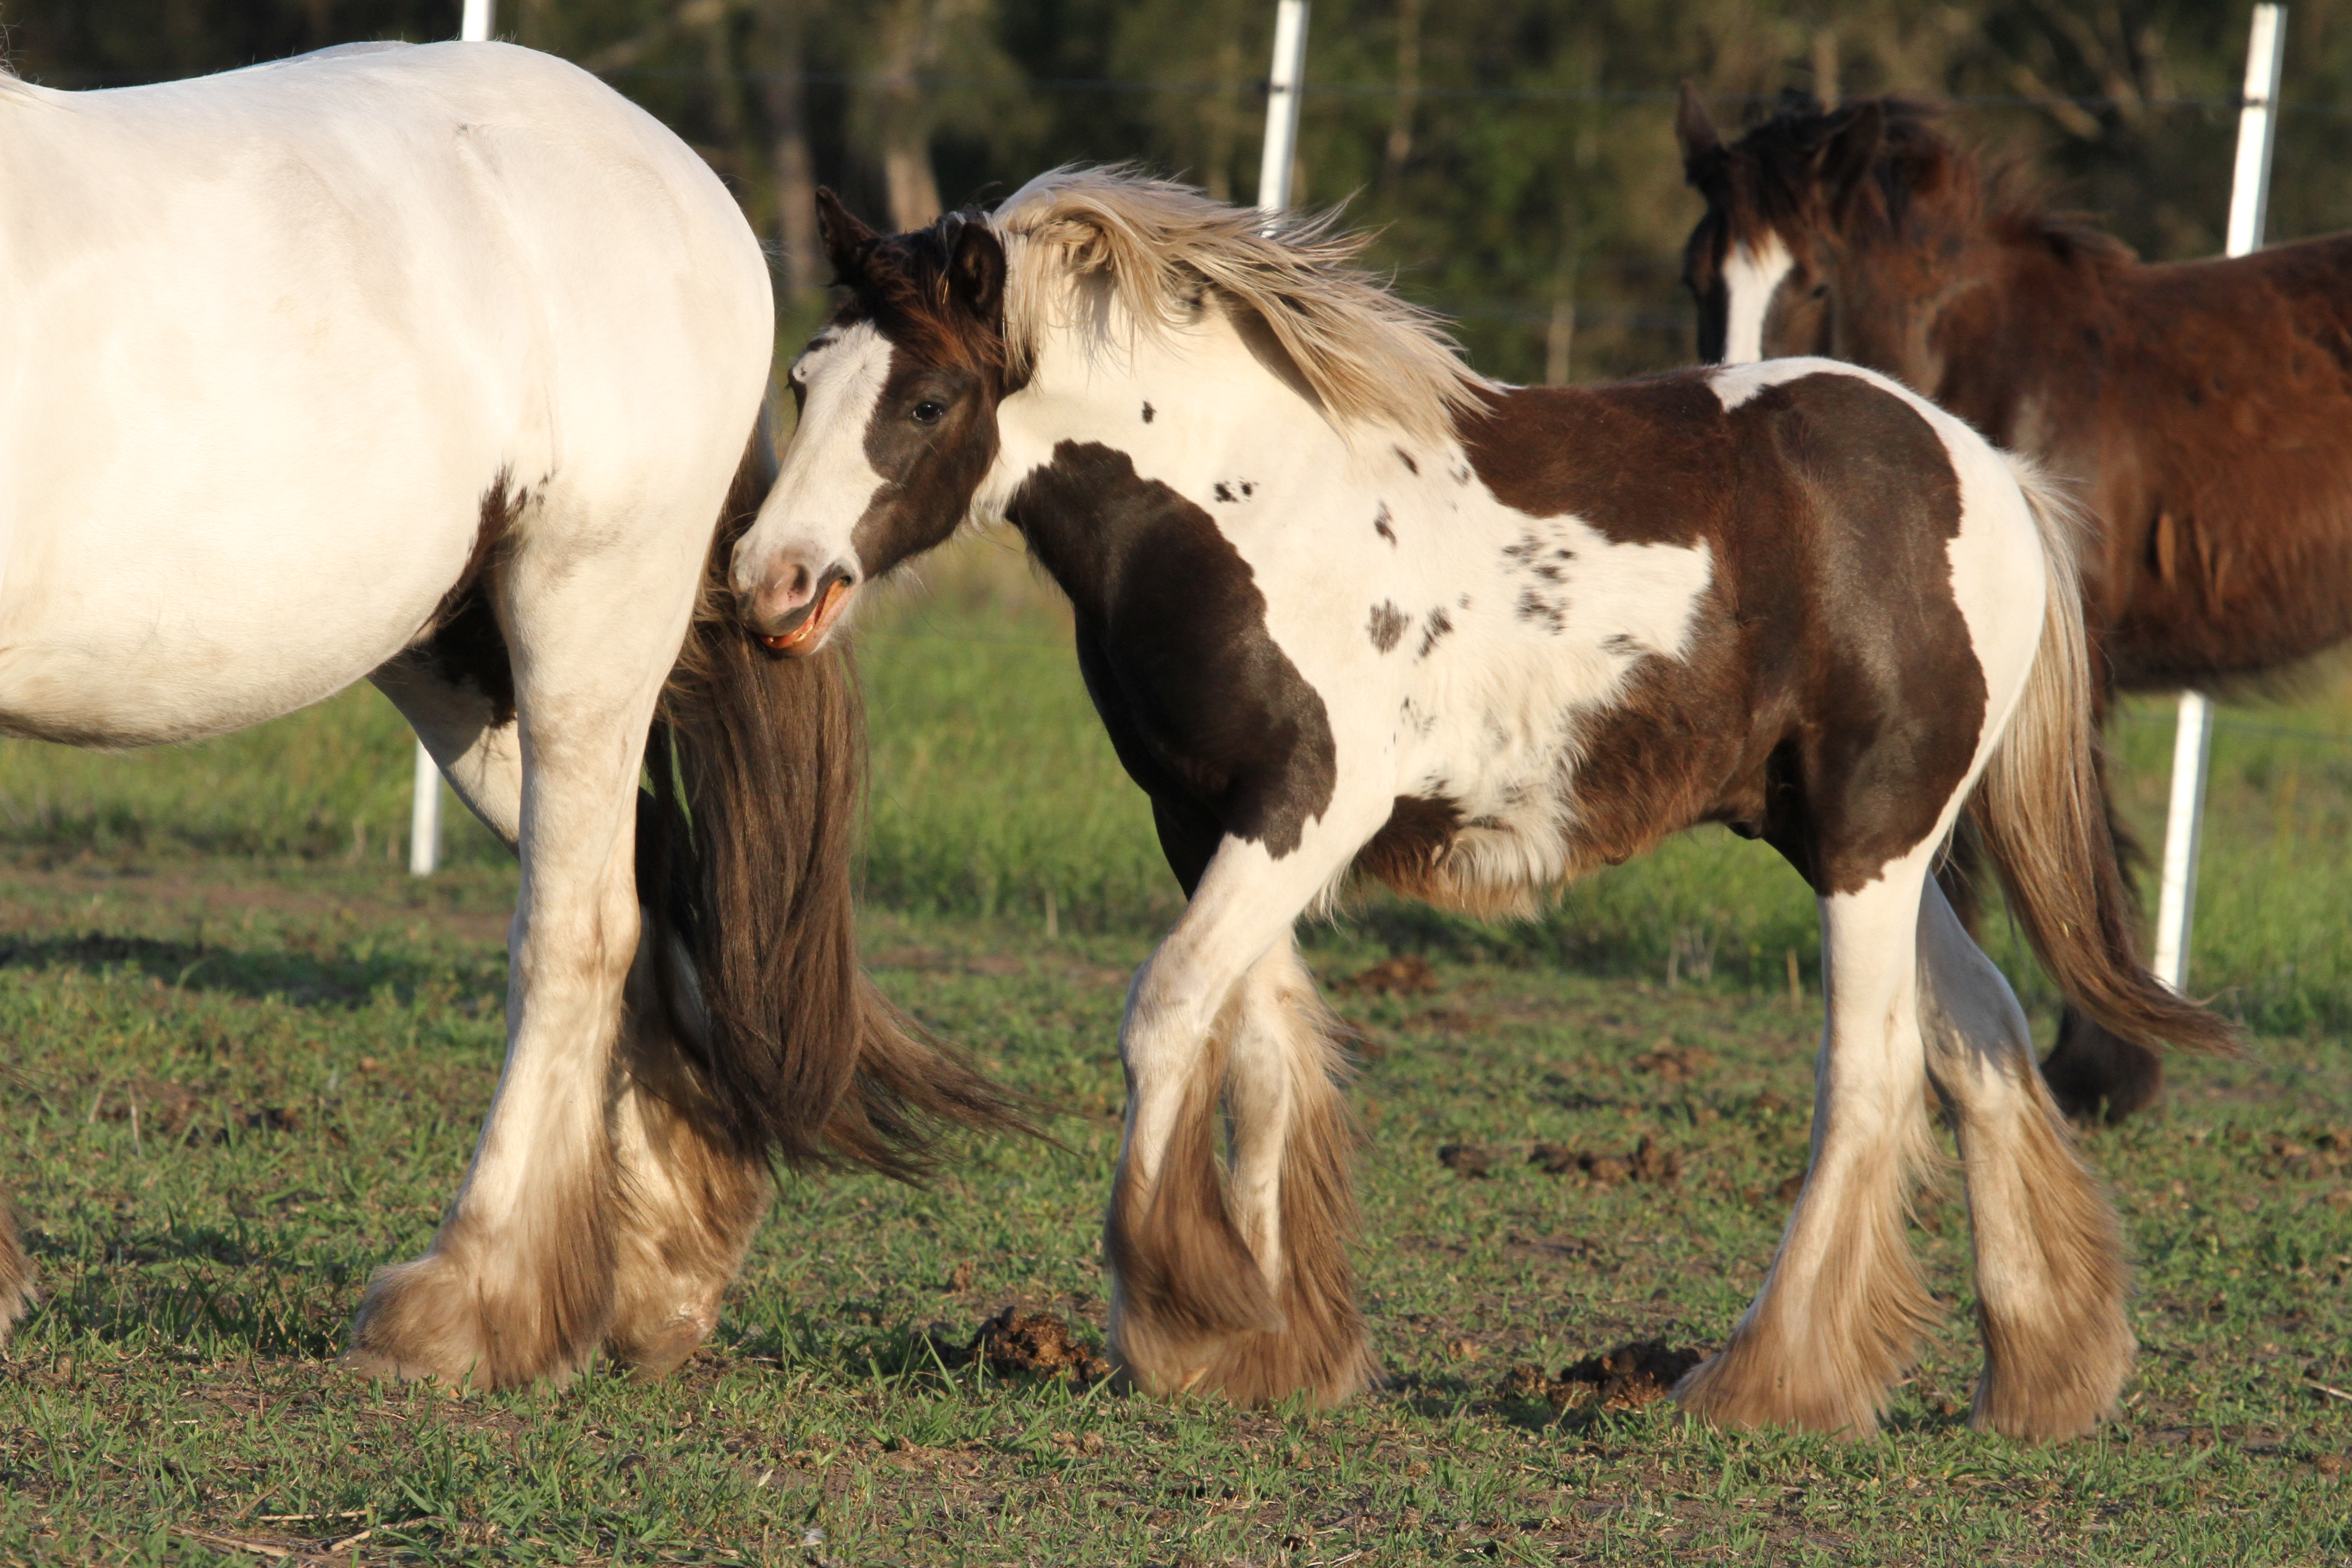 High Street's The Peaceful Warrior. Homozygous Tobiano colt for sale